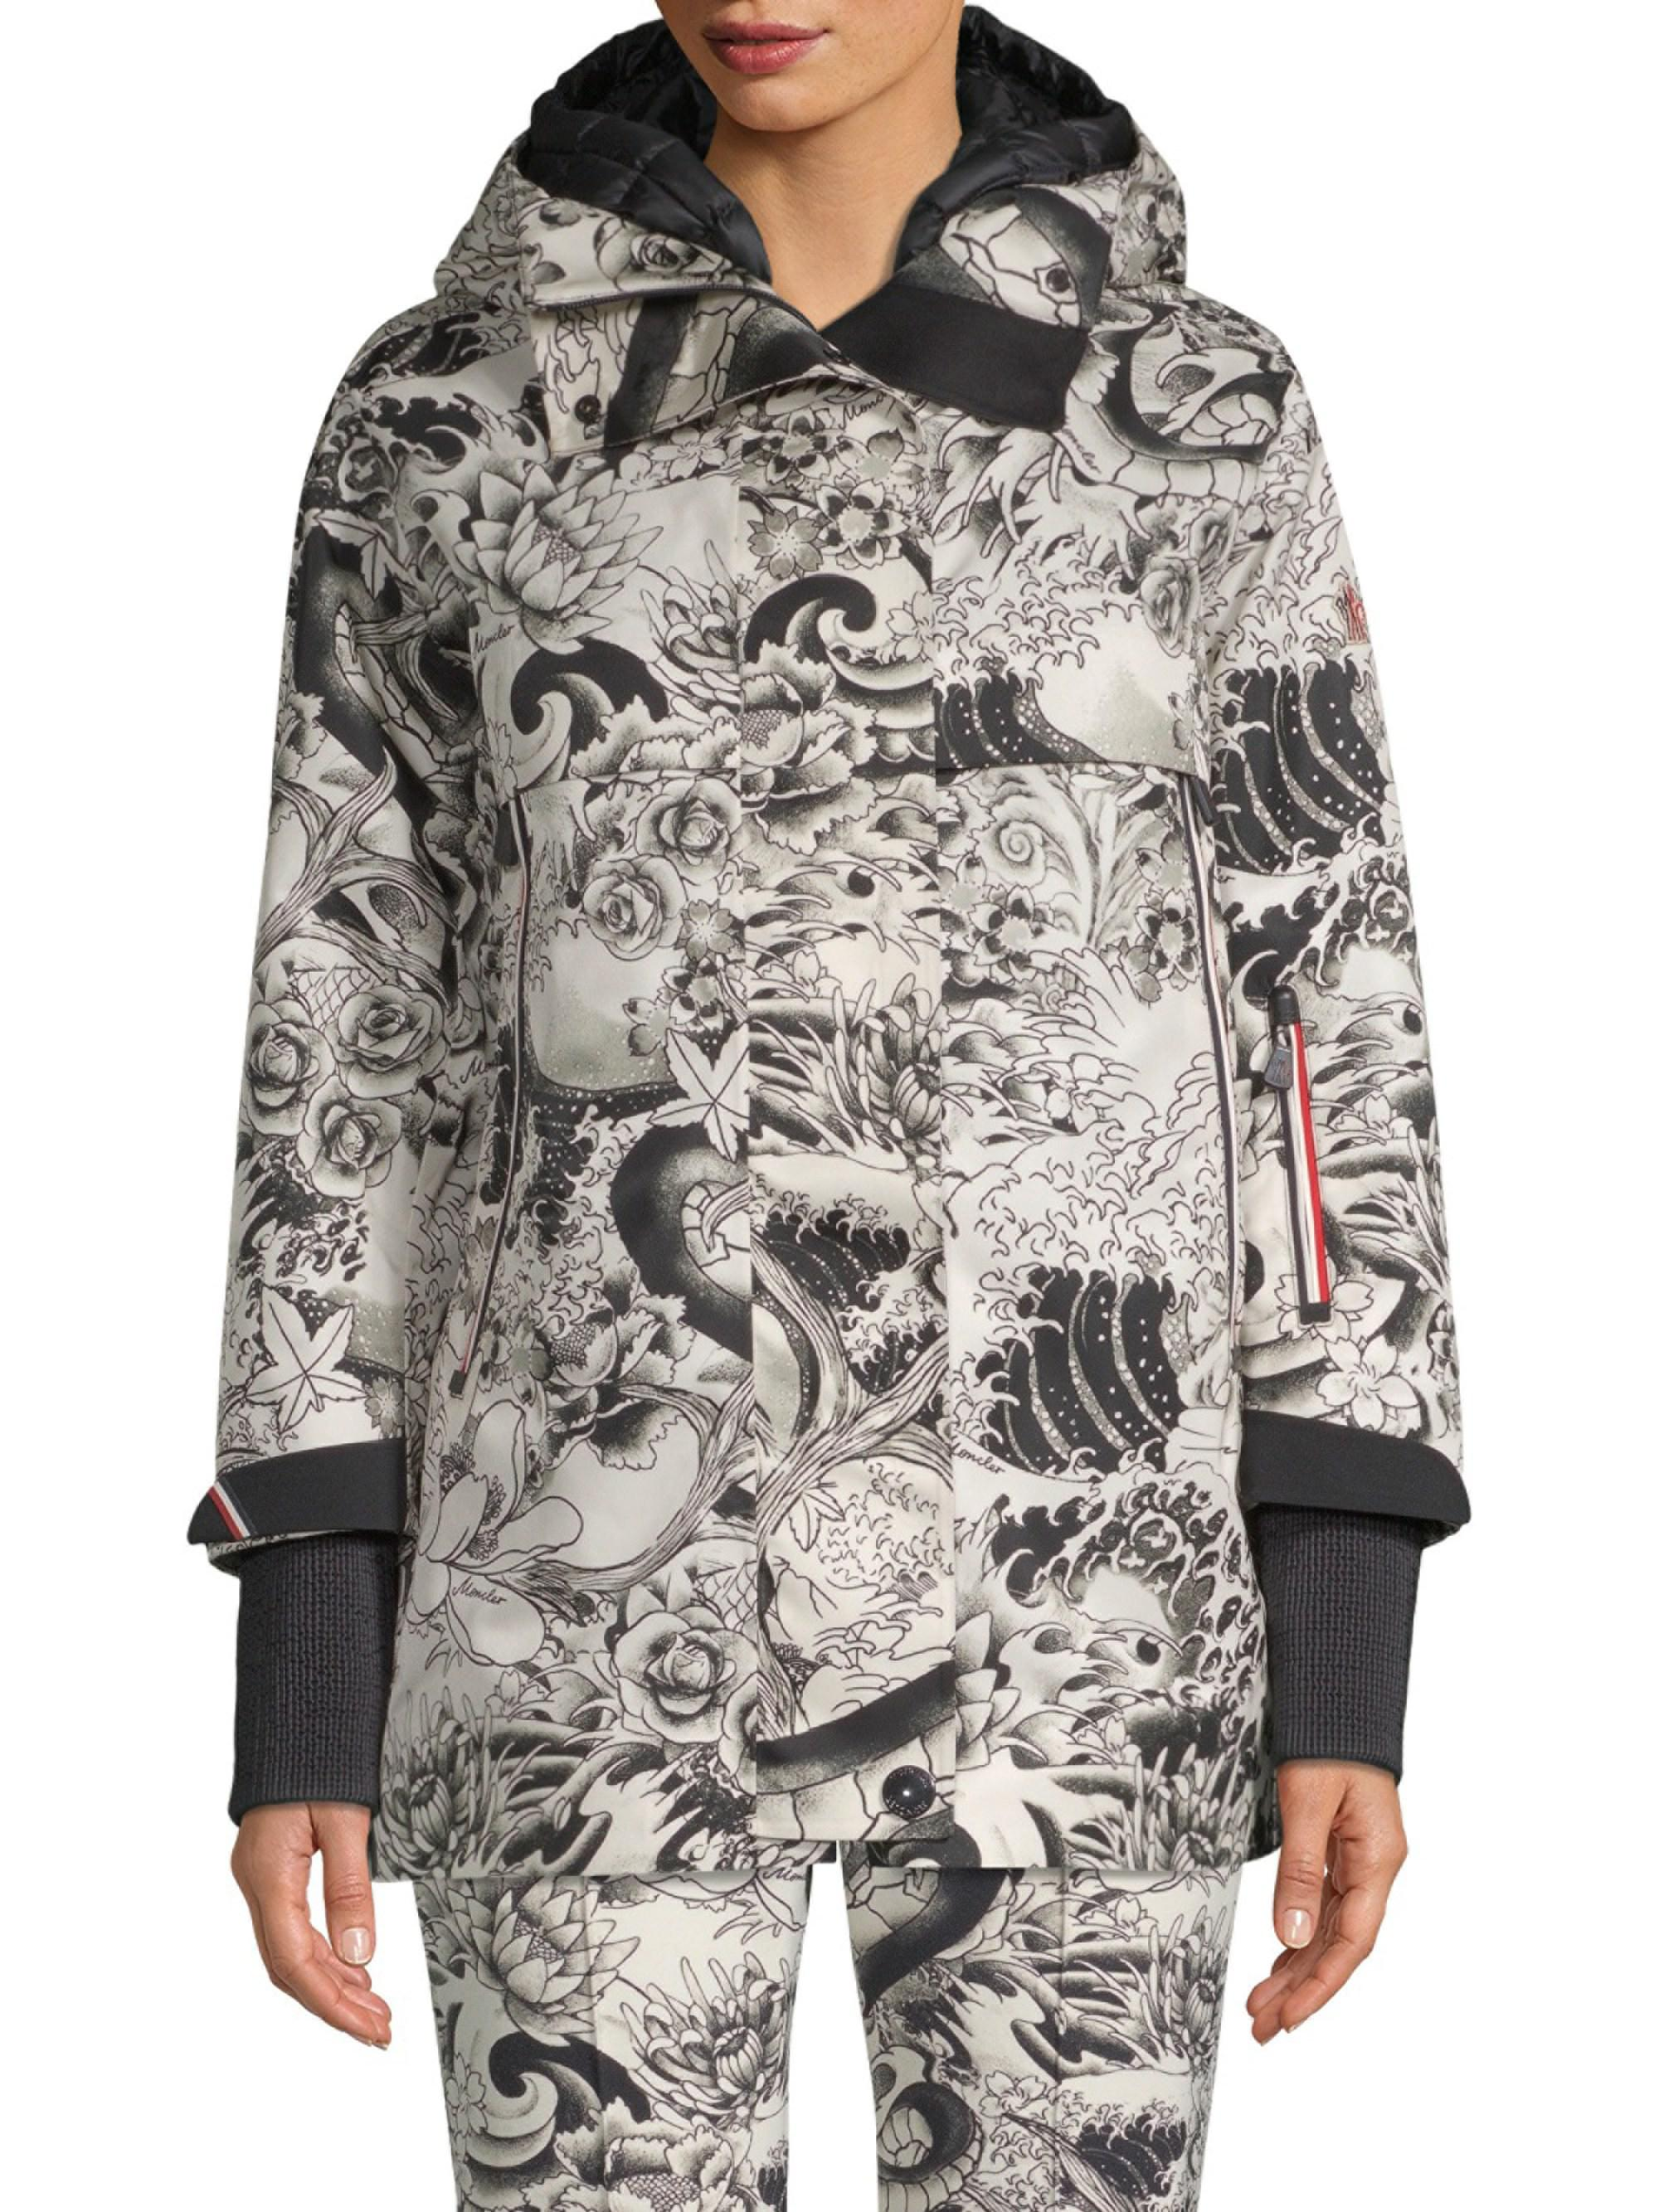 ade5eafa3 Lyst - Moncler Neves Tattoo Print Hooded Snowboarding Jacket